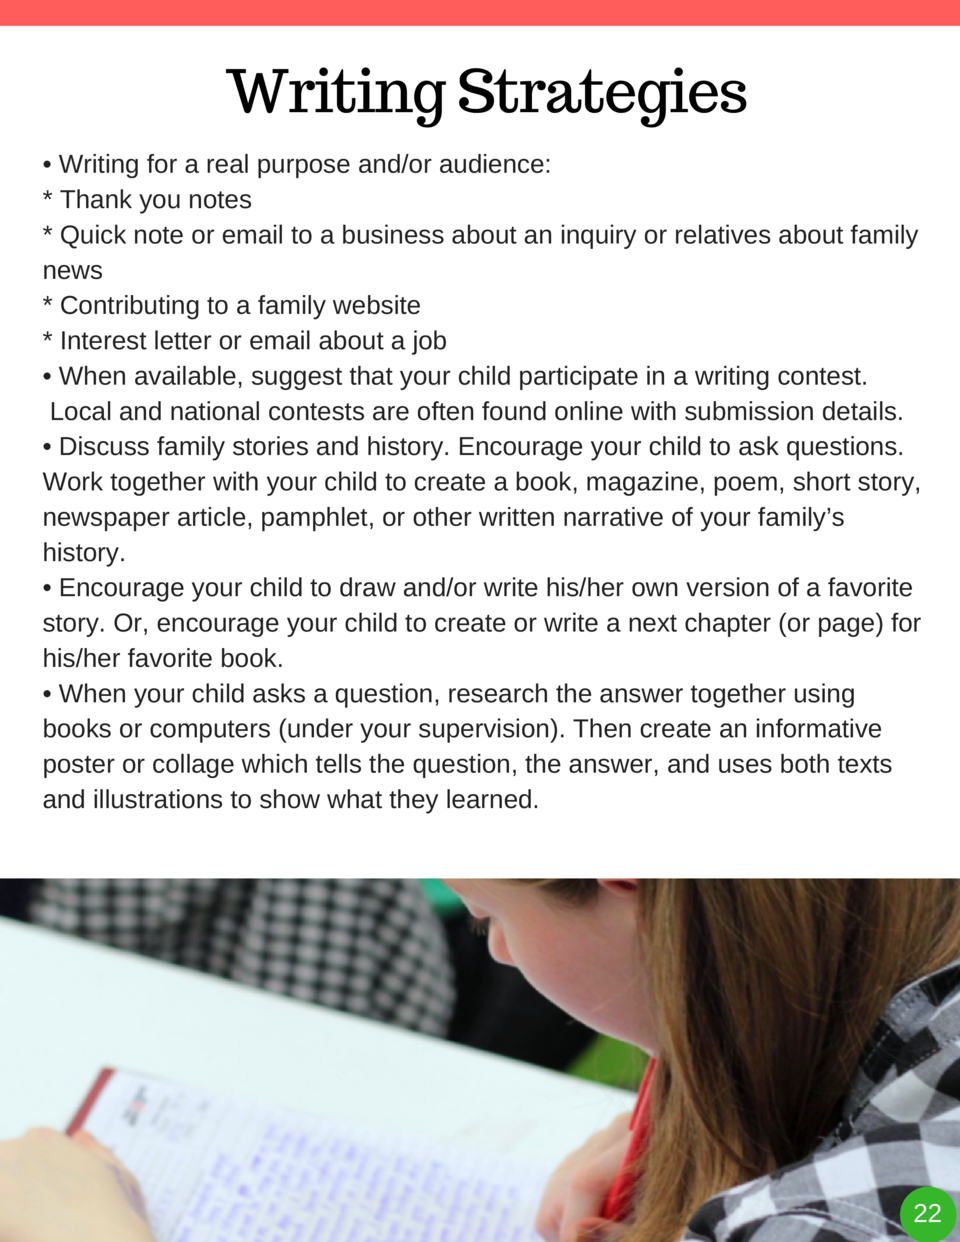 Writing Strategies     Writing for a real purpose and or audience    Thank you notes   Quick note or email to a business a...